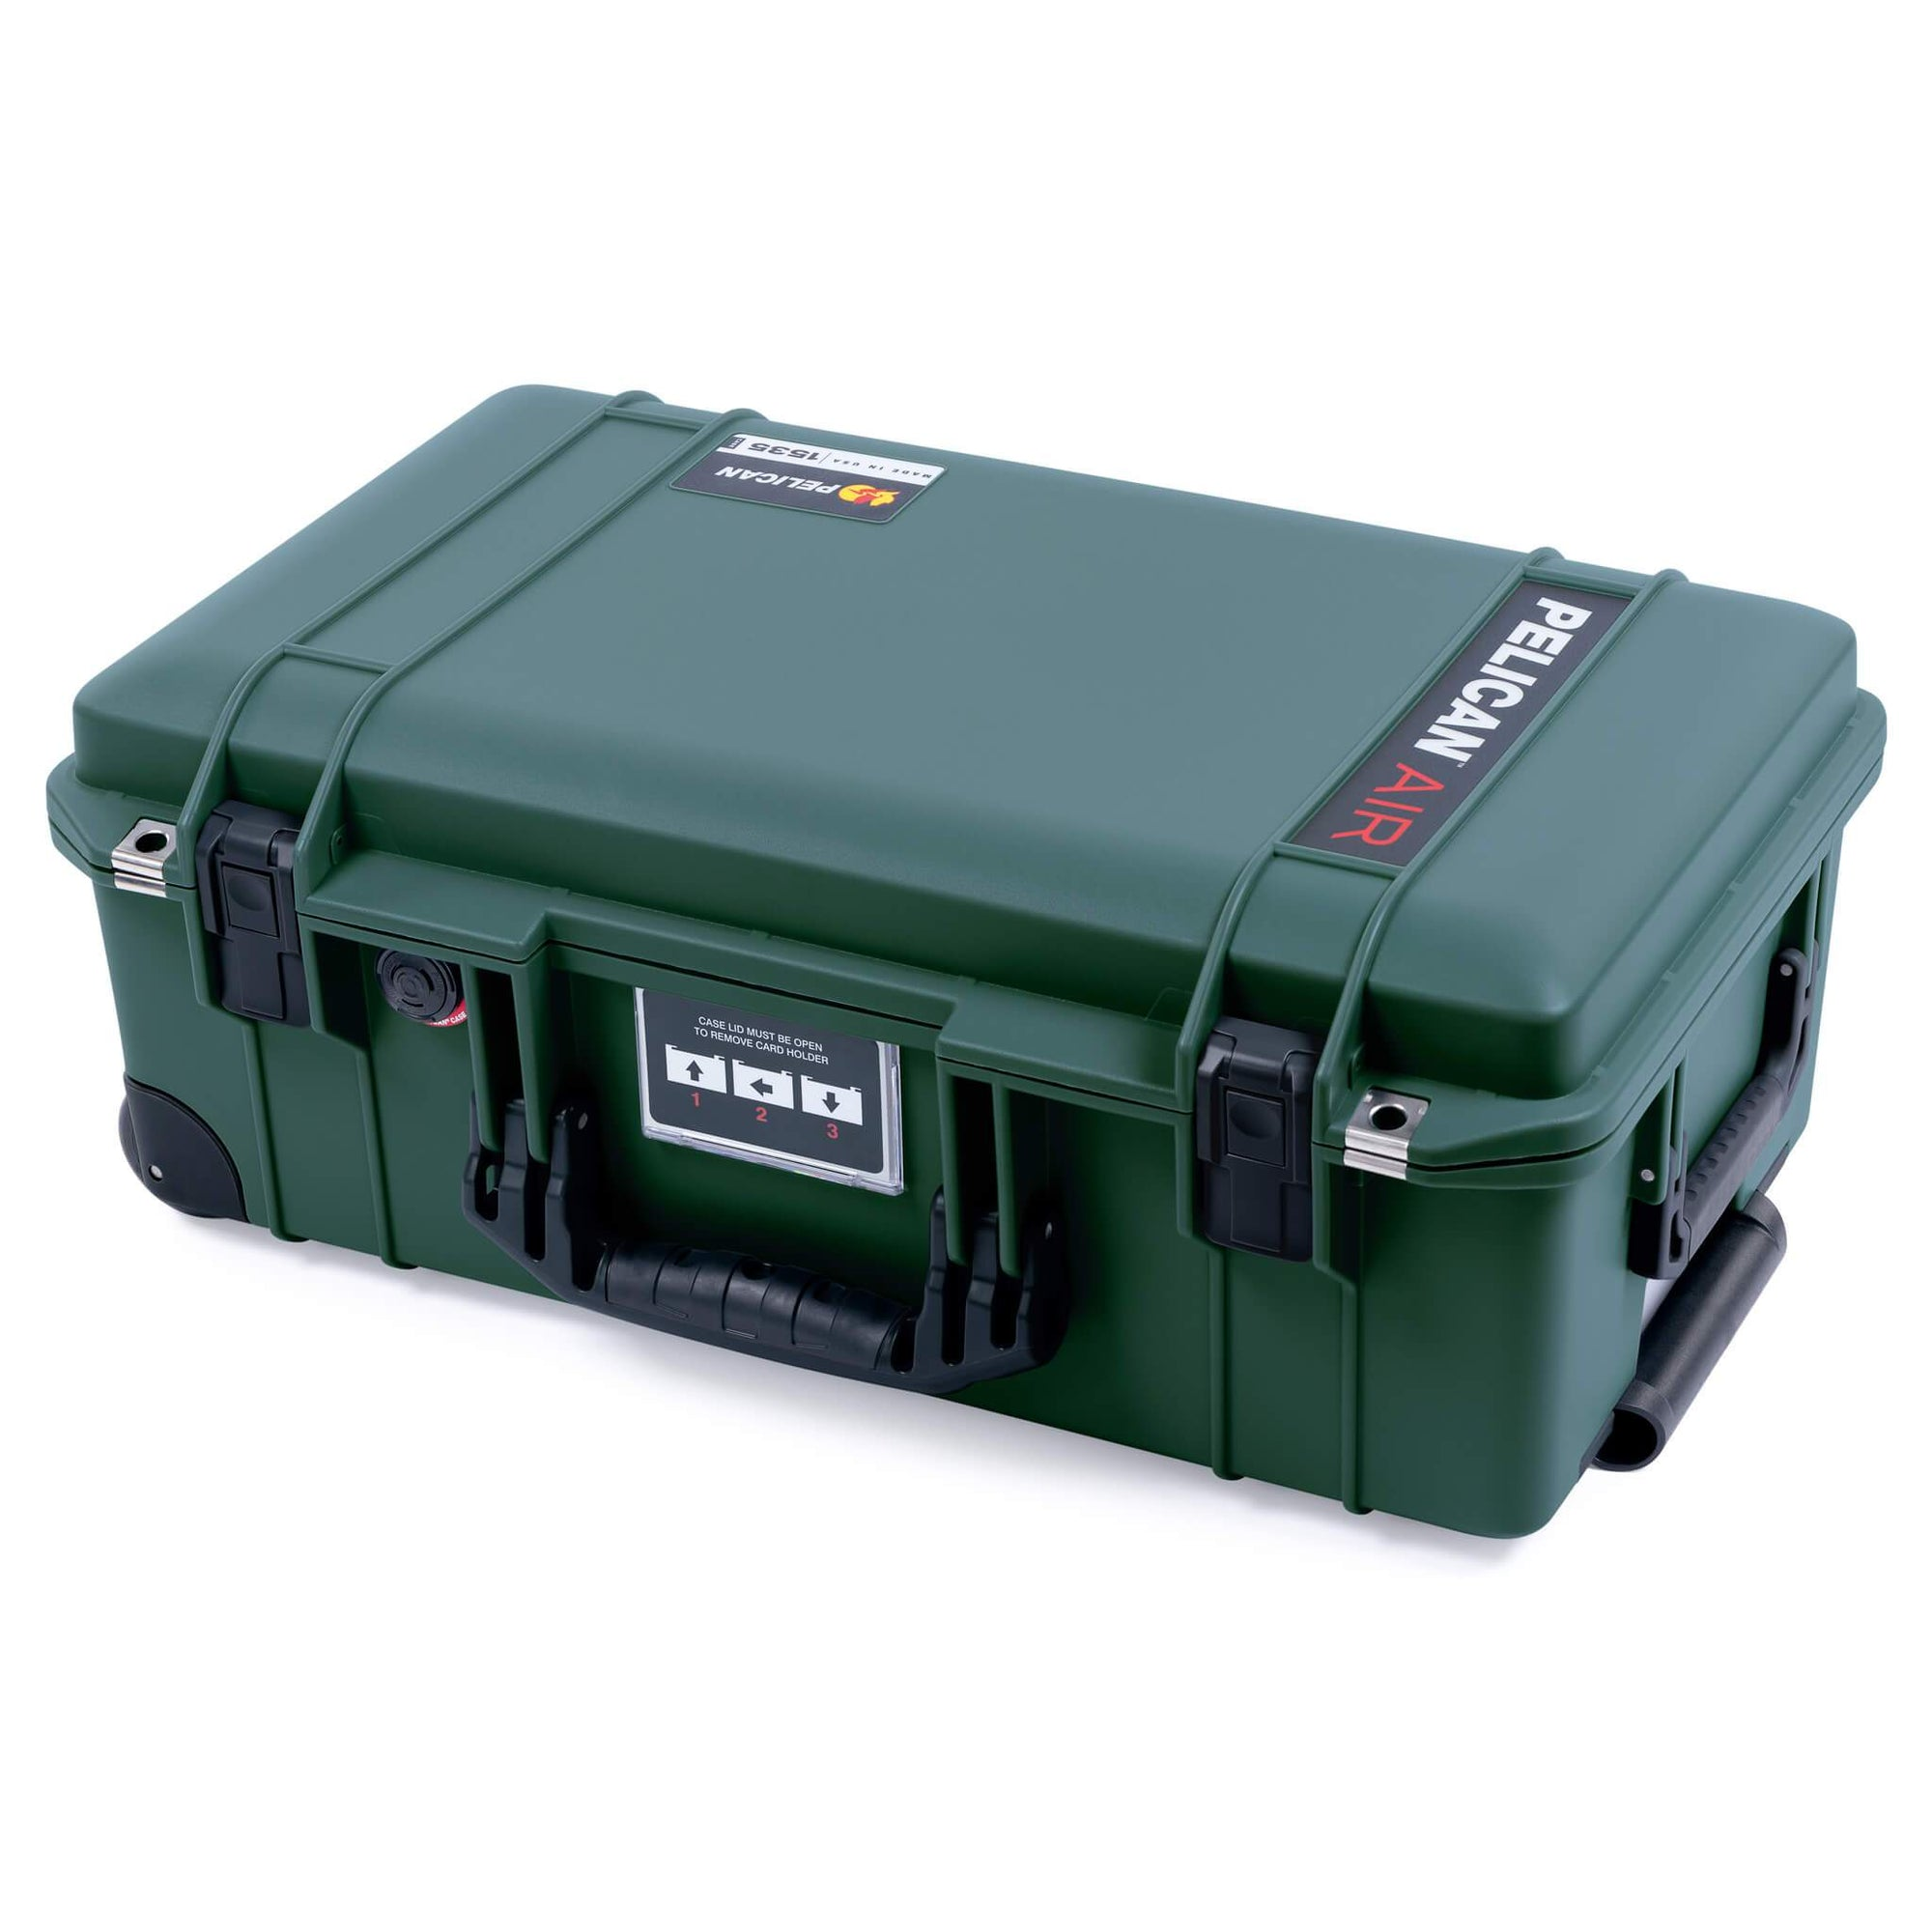 Pelican 1535 Air Case, Trekking Green with Black Handles, Push-Button Latches & Trolley